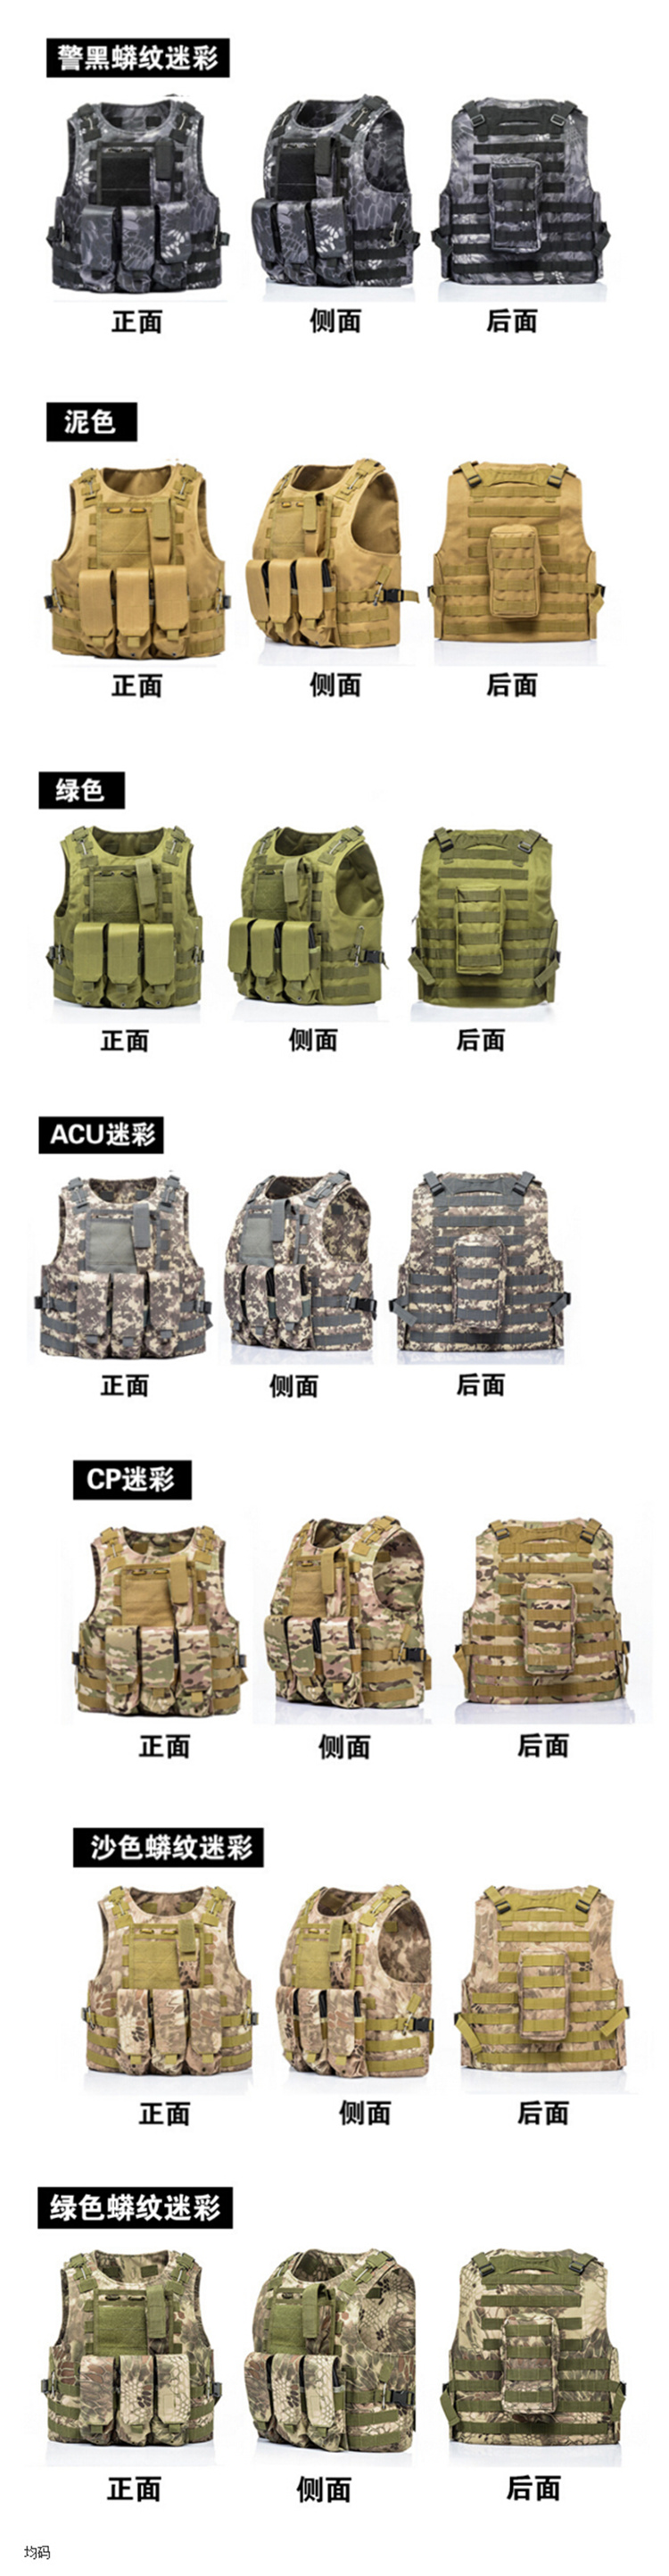 Customized  Tactical Vest high quality  NEW Military Army  vests made in china factory  manufacturer polyester